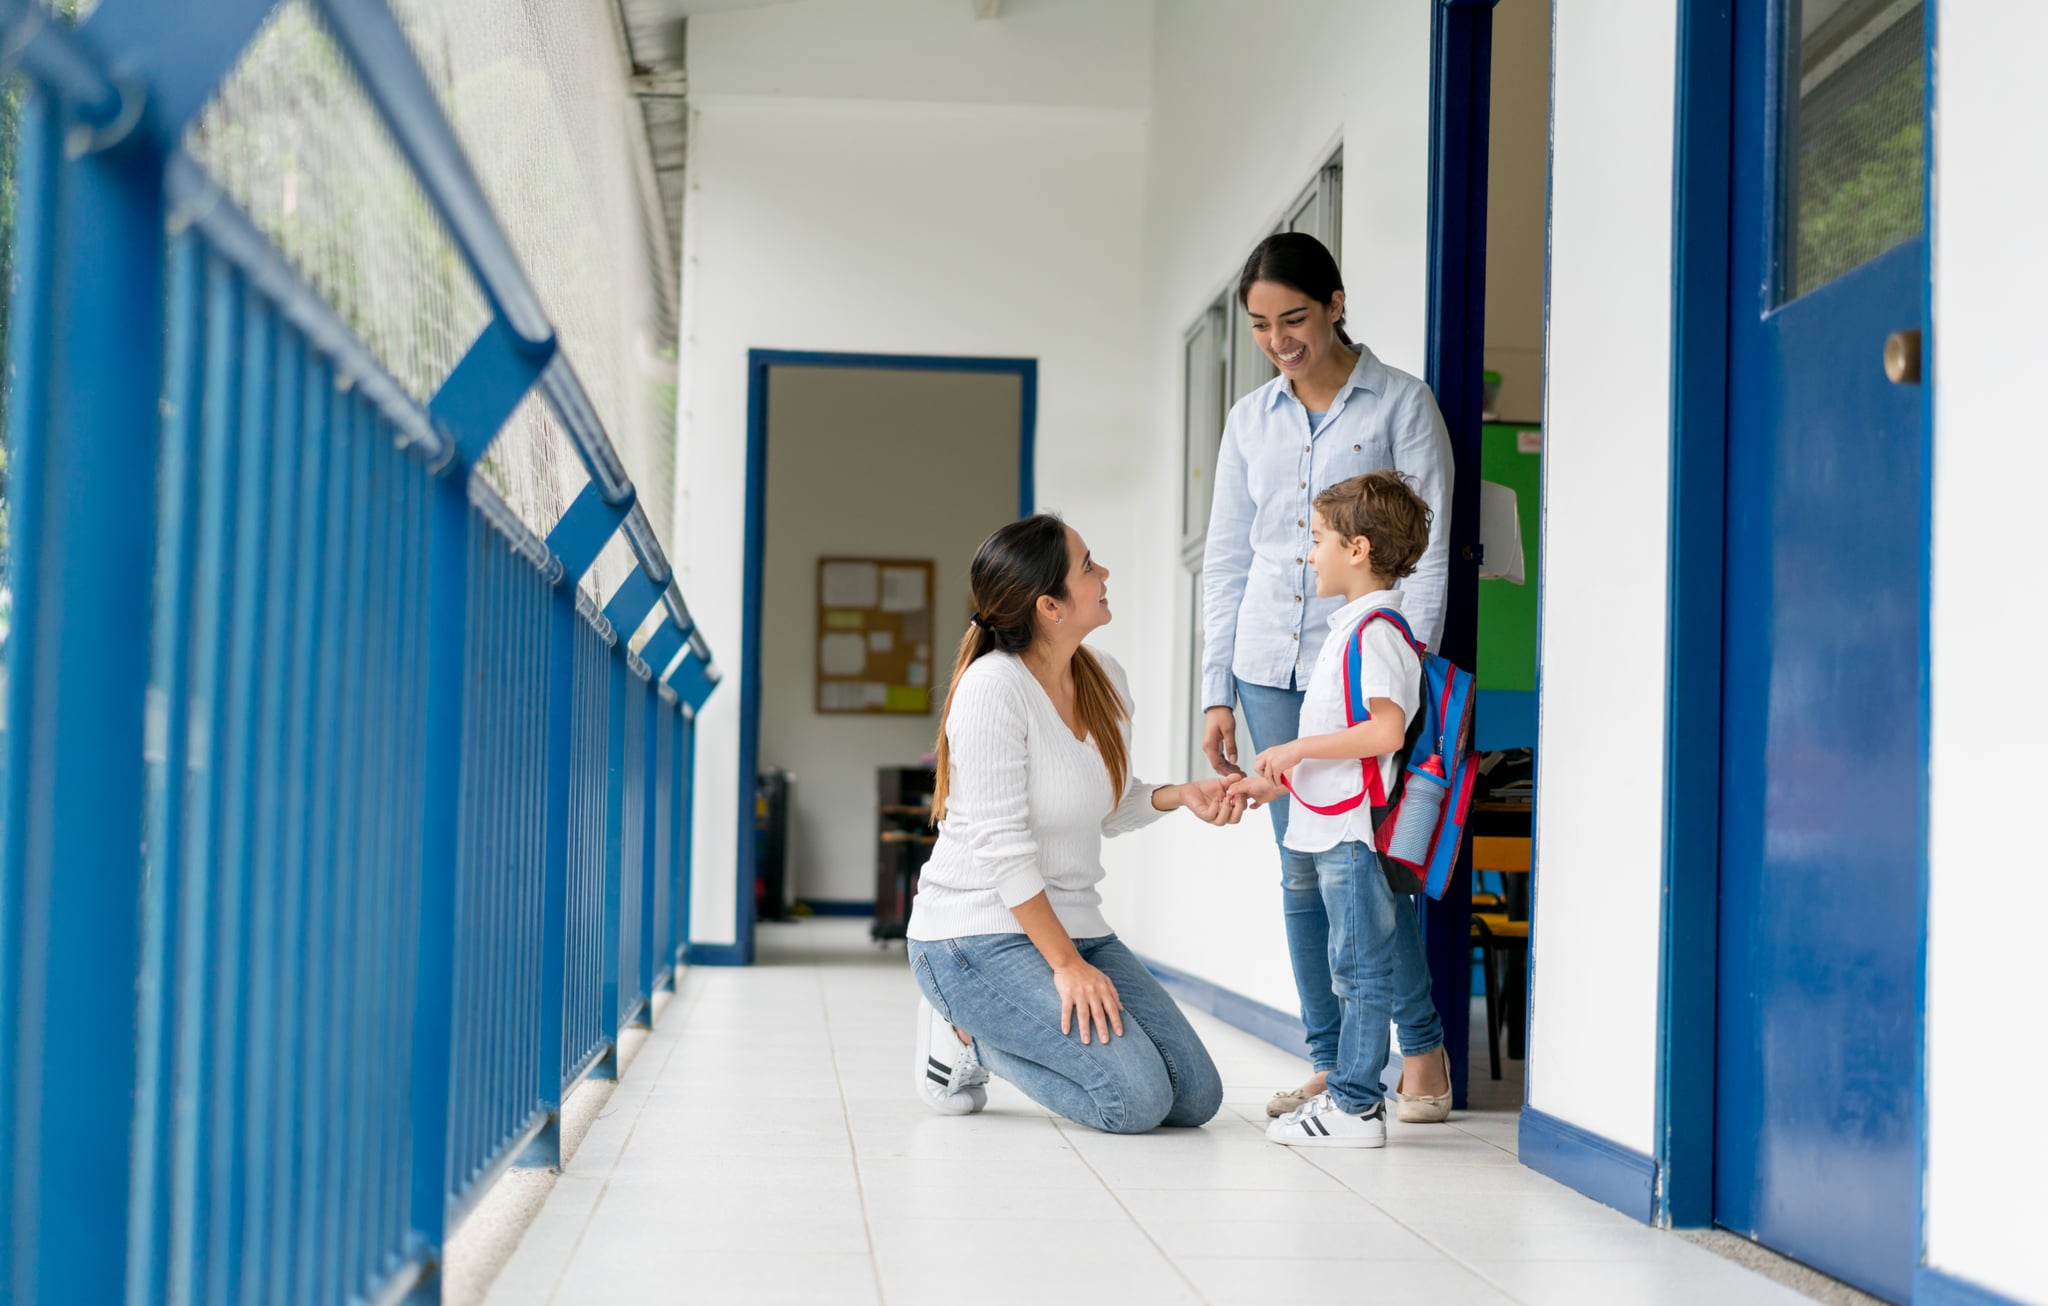 Portrait of a mother picking up her kid from school and talking to the teacher while looking happy - education concepts